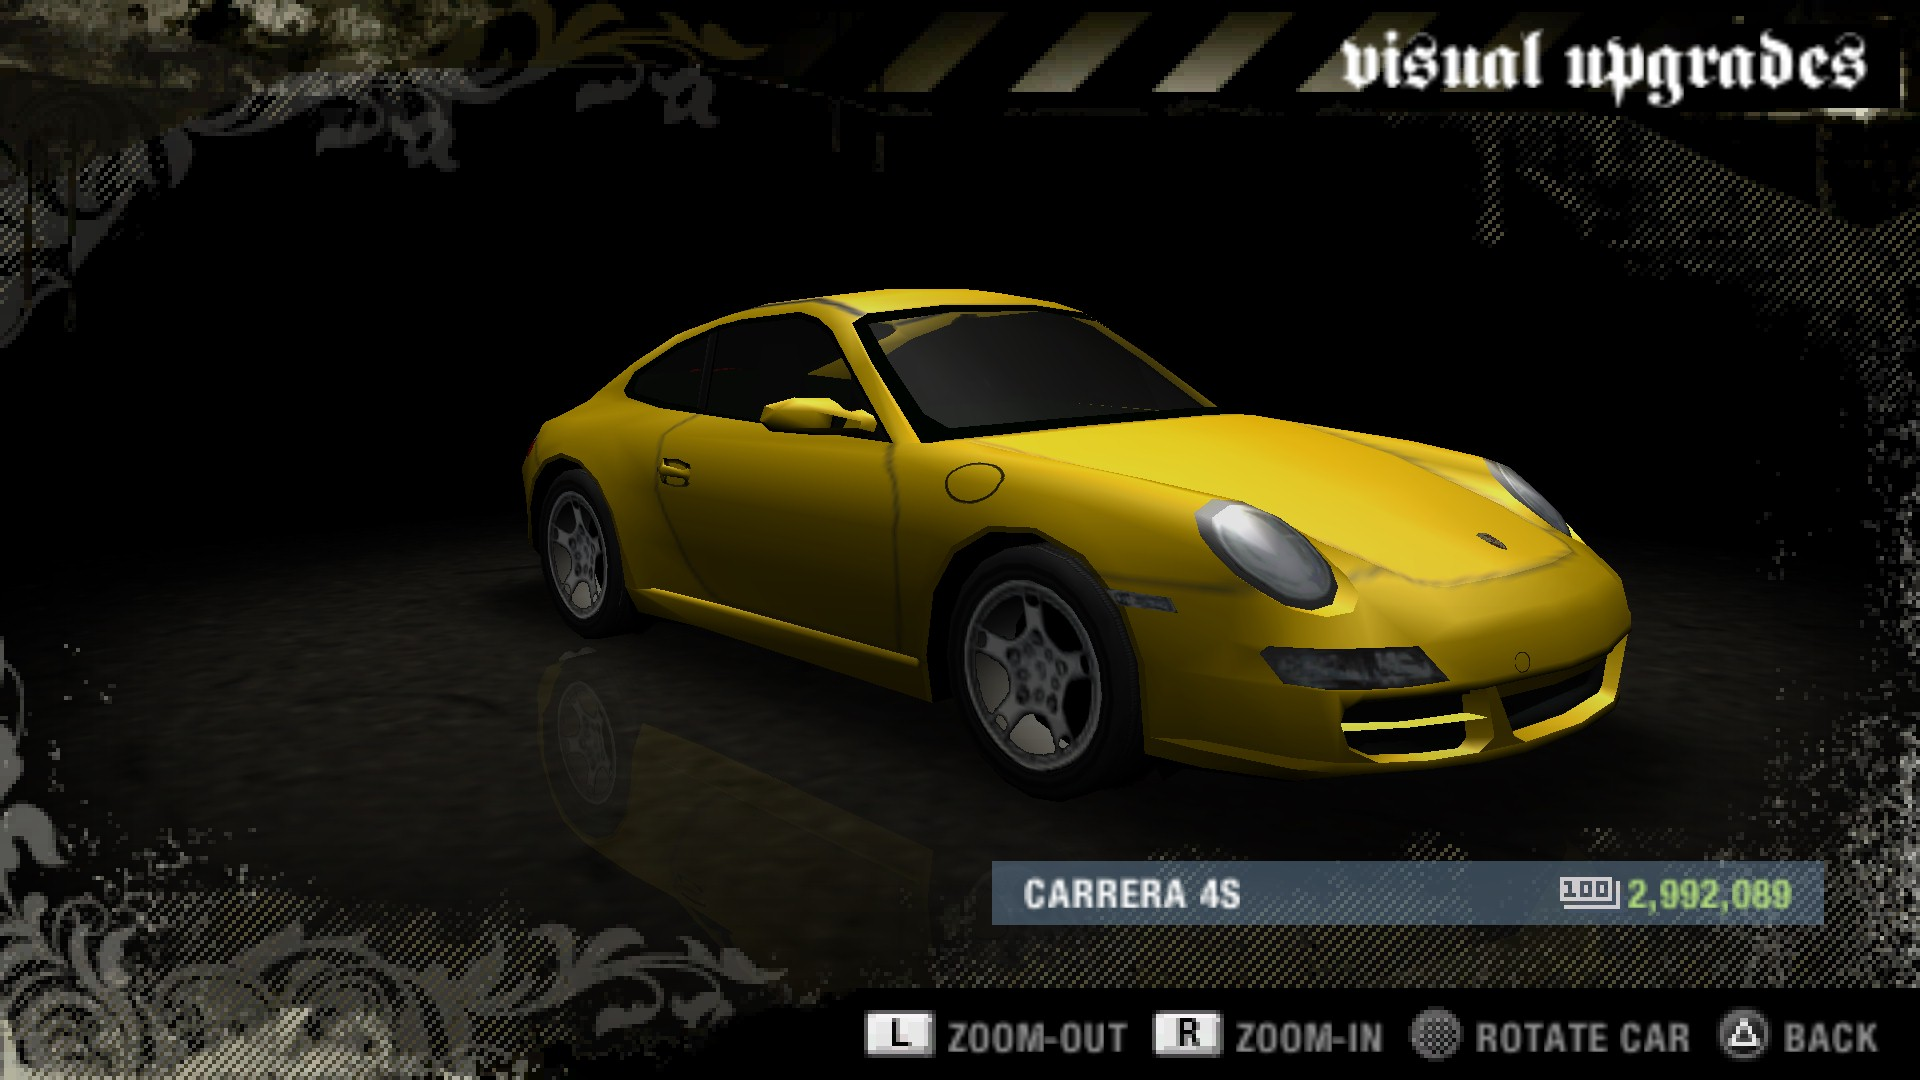 porsche 911 carrera 4s 997 need for speed wiki fandom powered by wikia. Black Bedroom Furniture Sets. Home Design Ideas